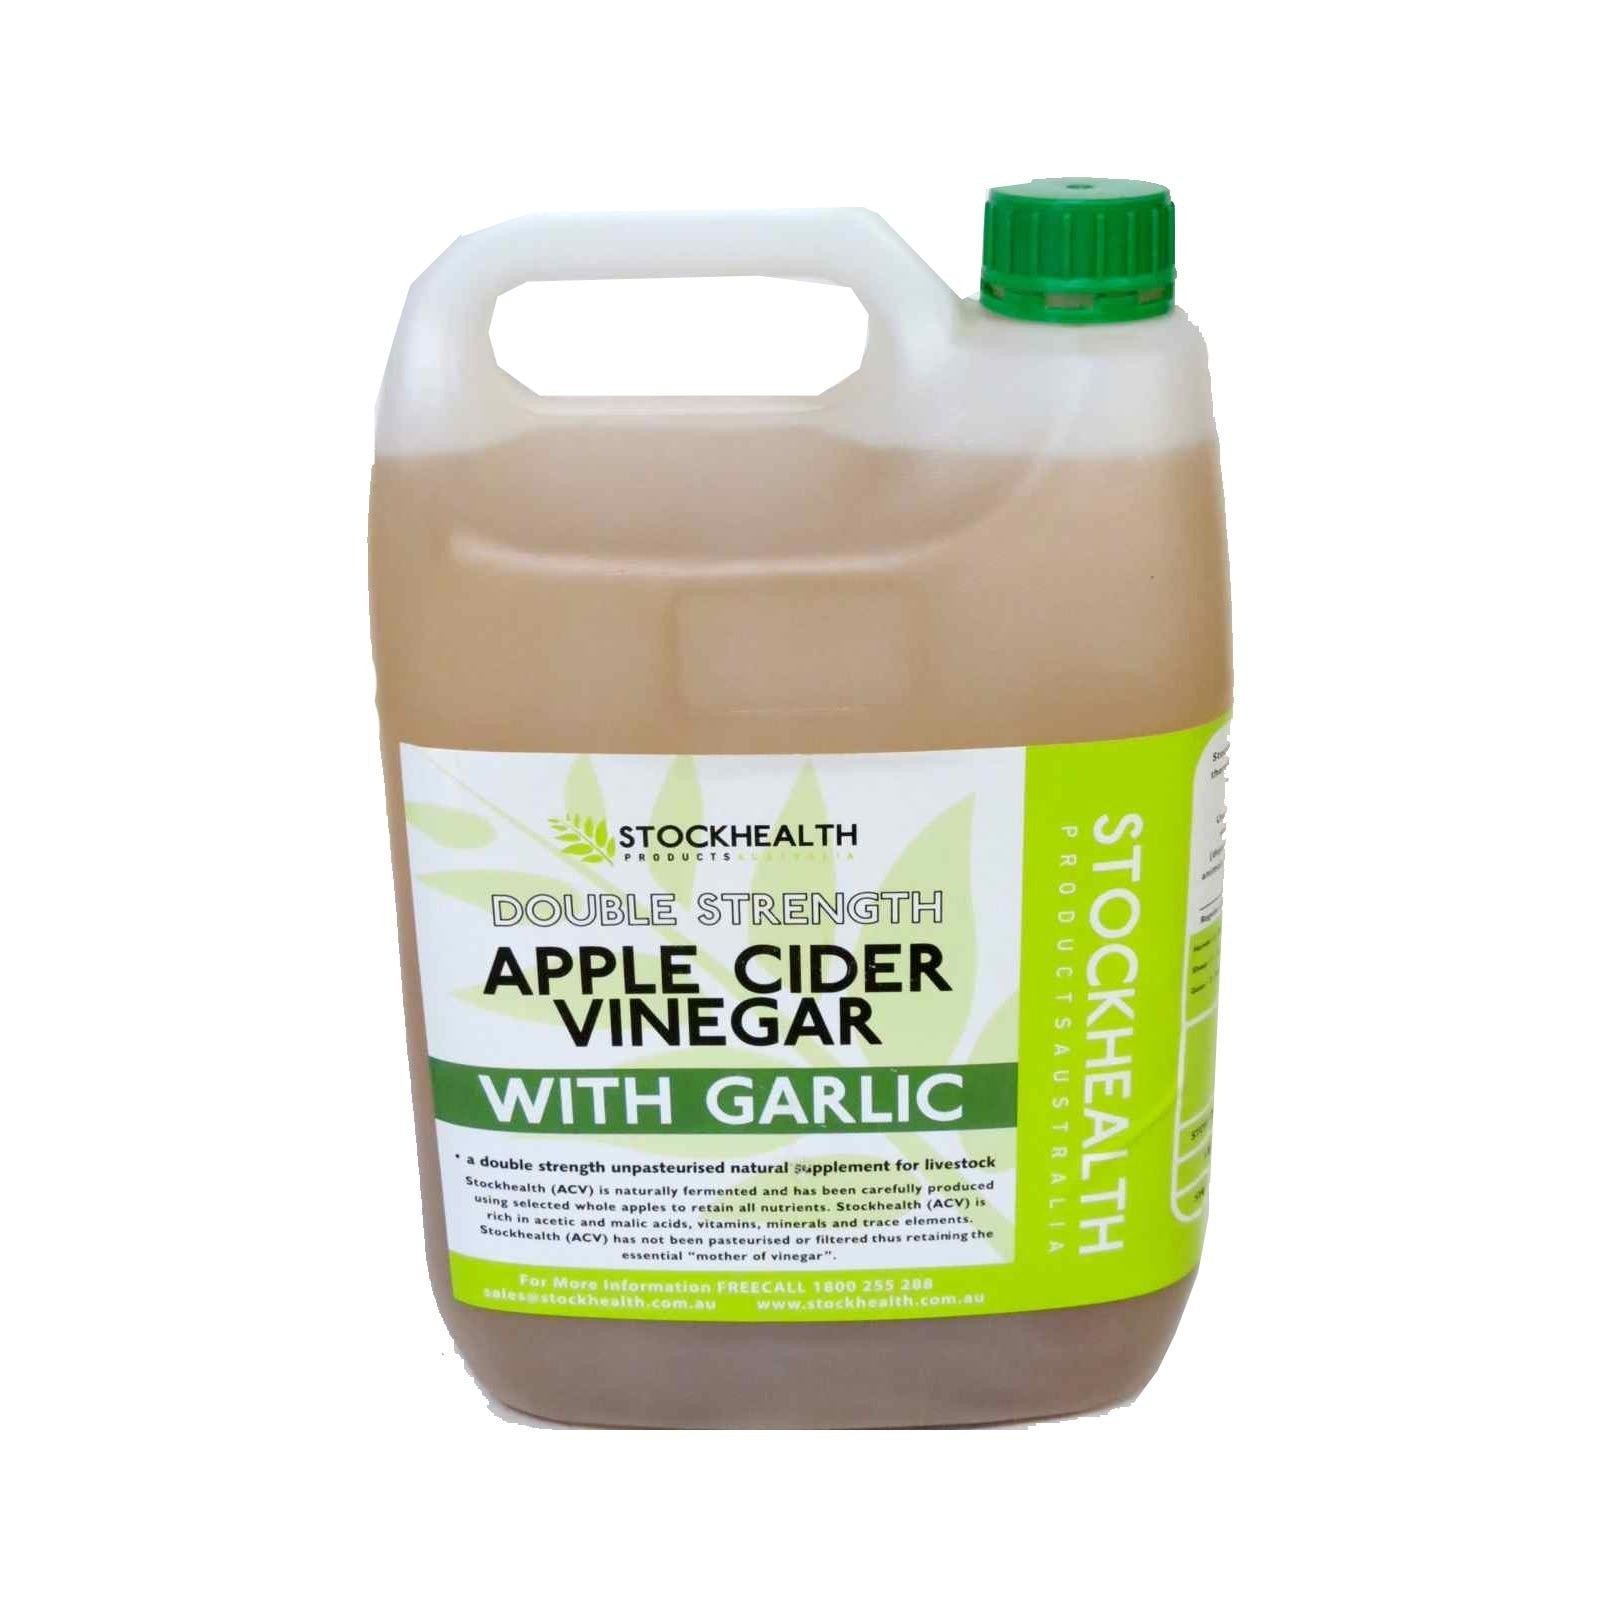 Apple Cider Vinegar with Garlic - Double Strength 2L